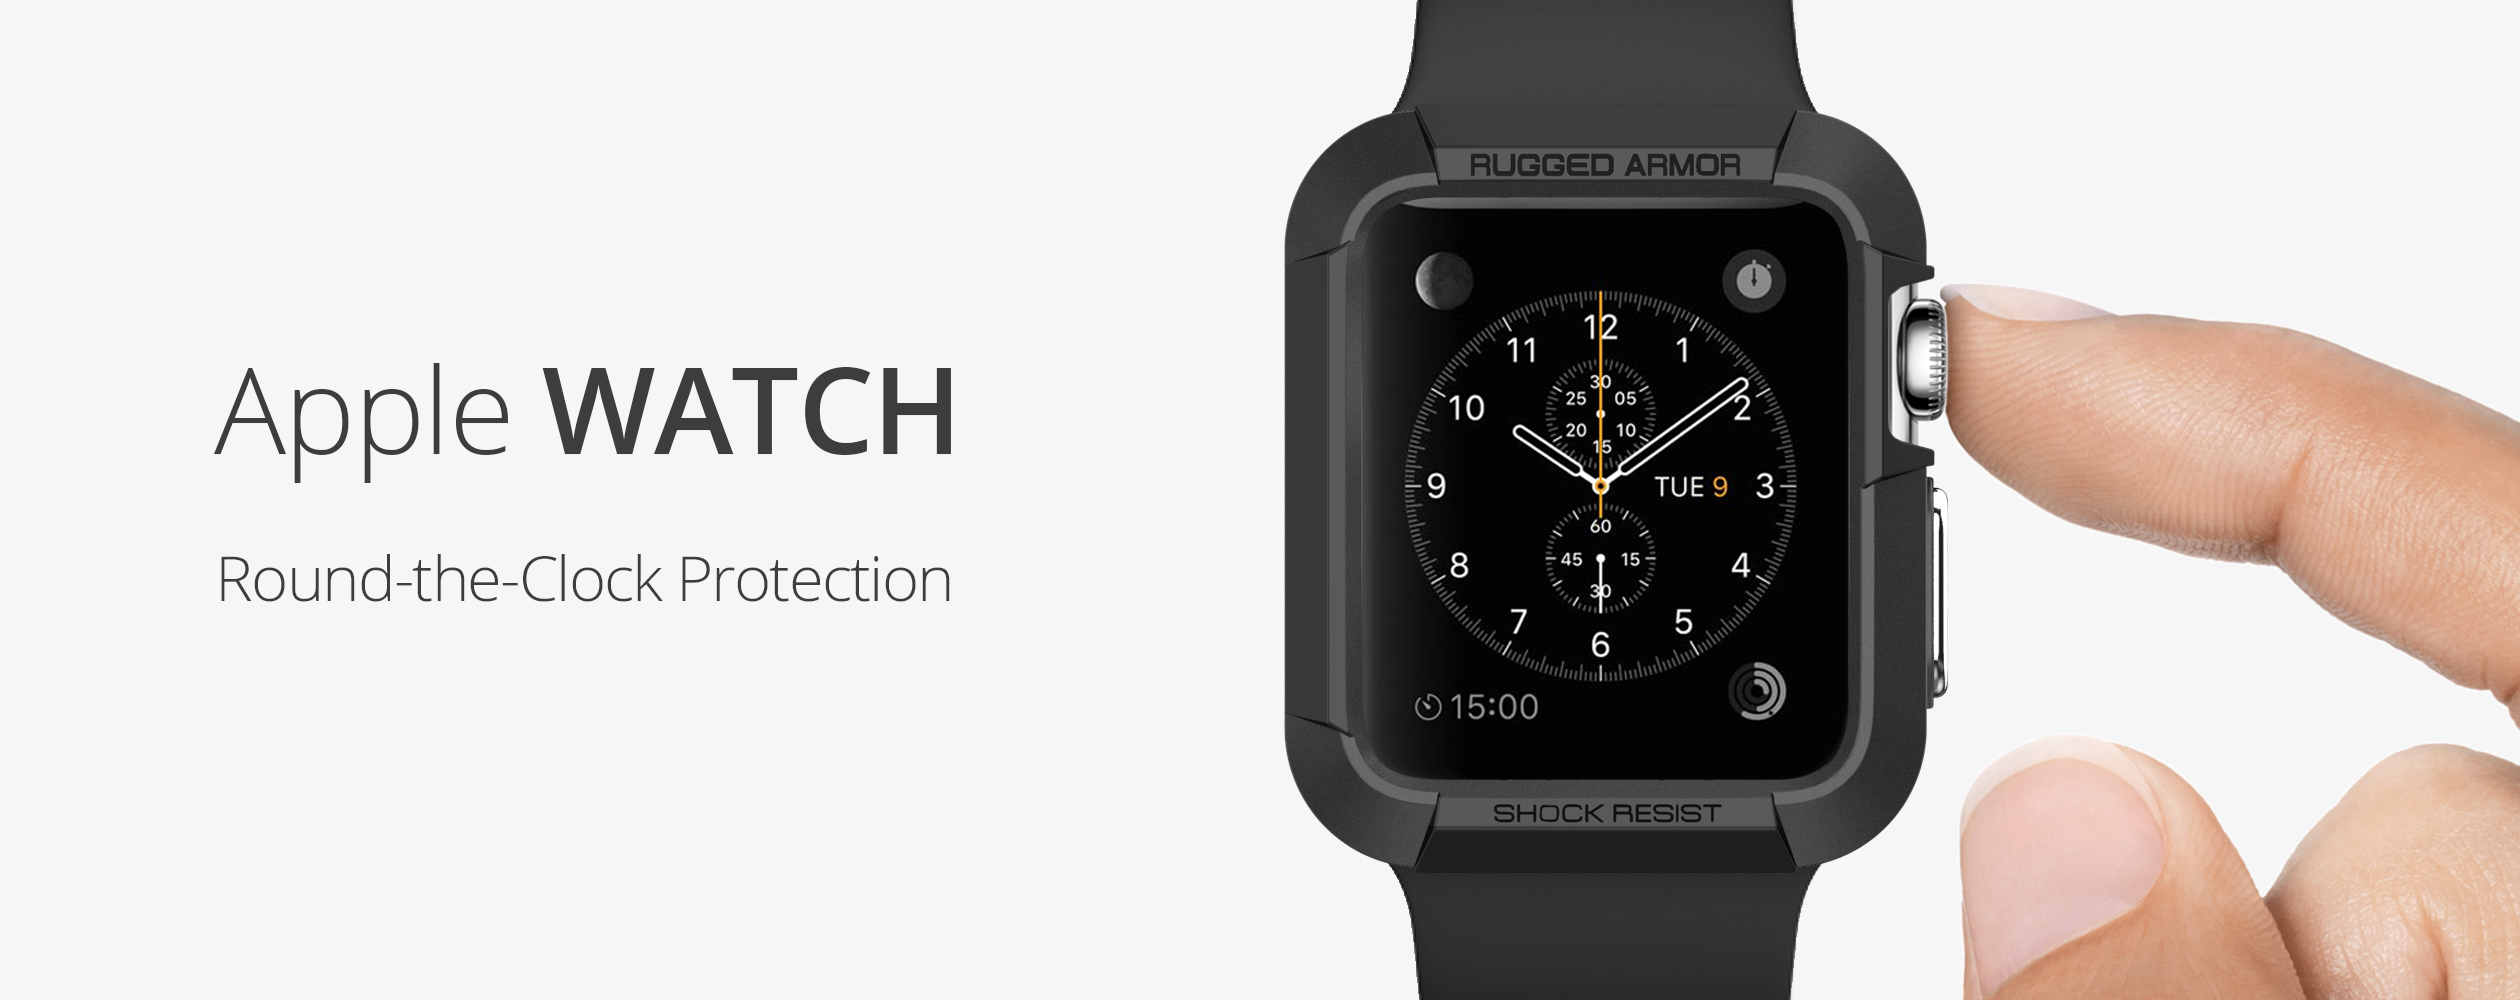 smartwatch family entire the pictures for gift guide and rug wearables smartwatches rugged